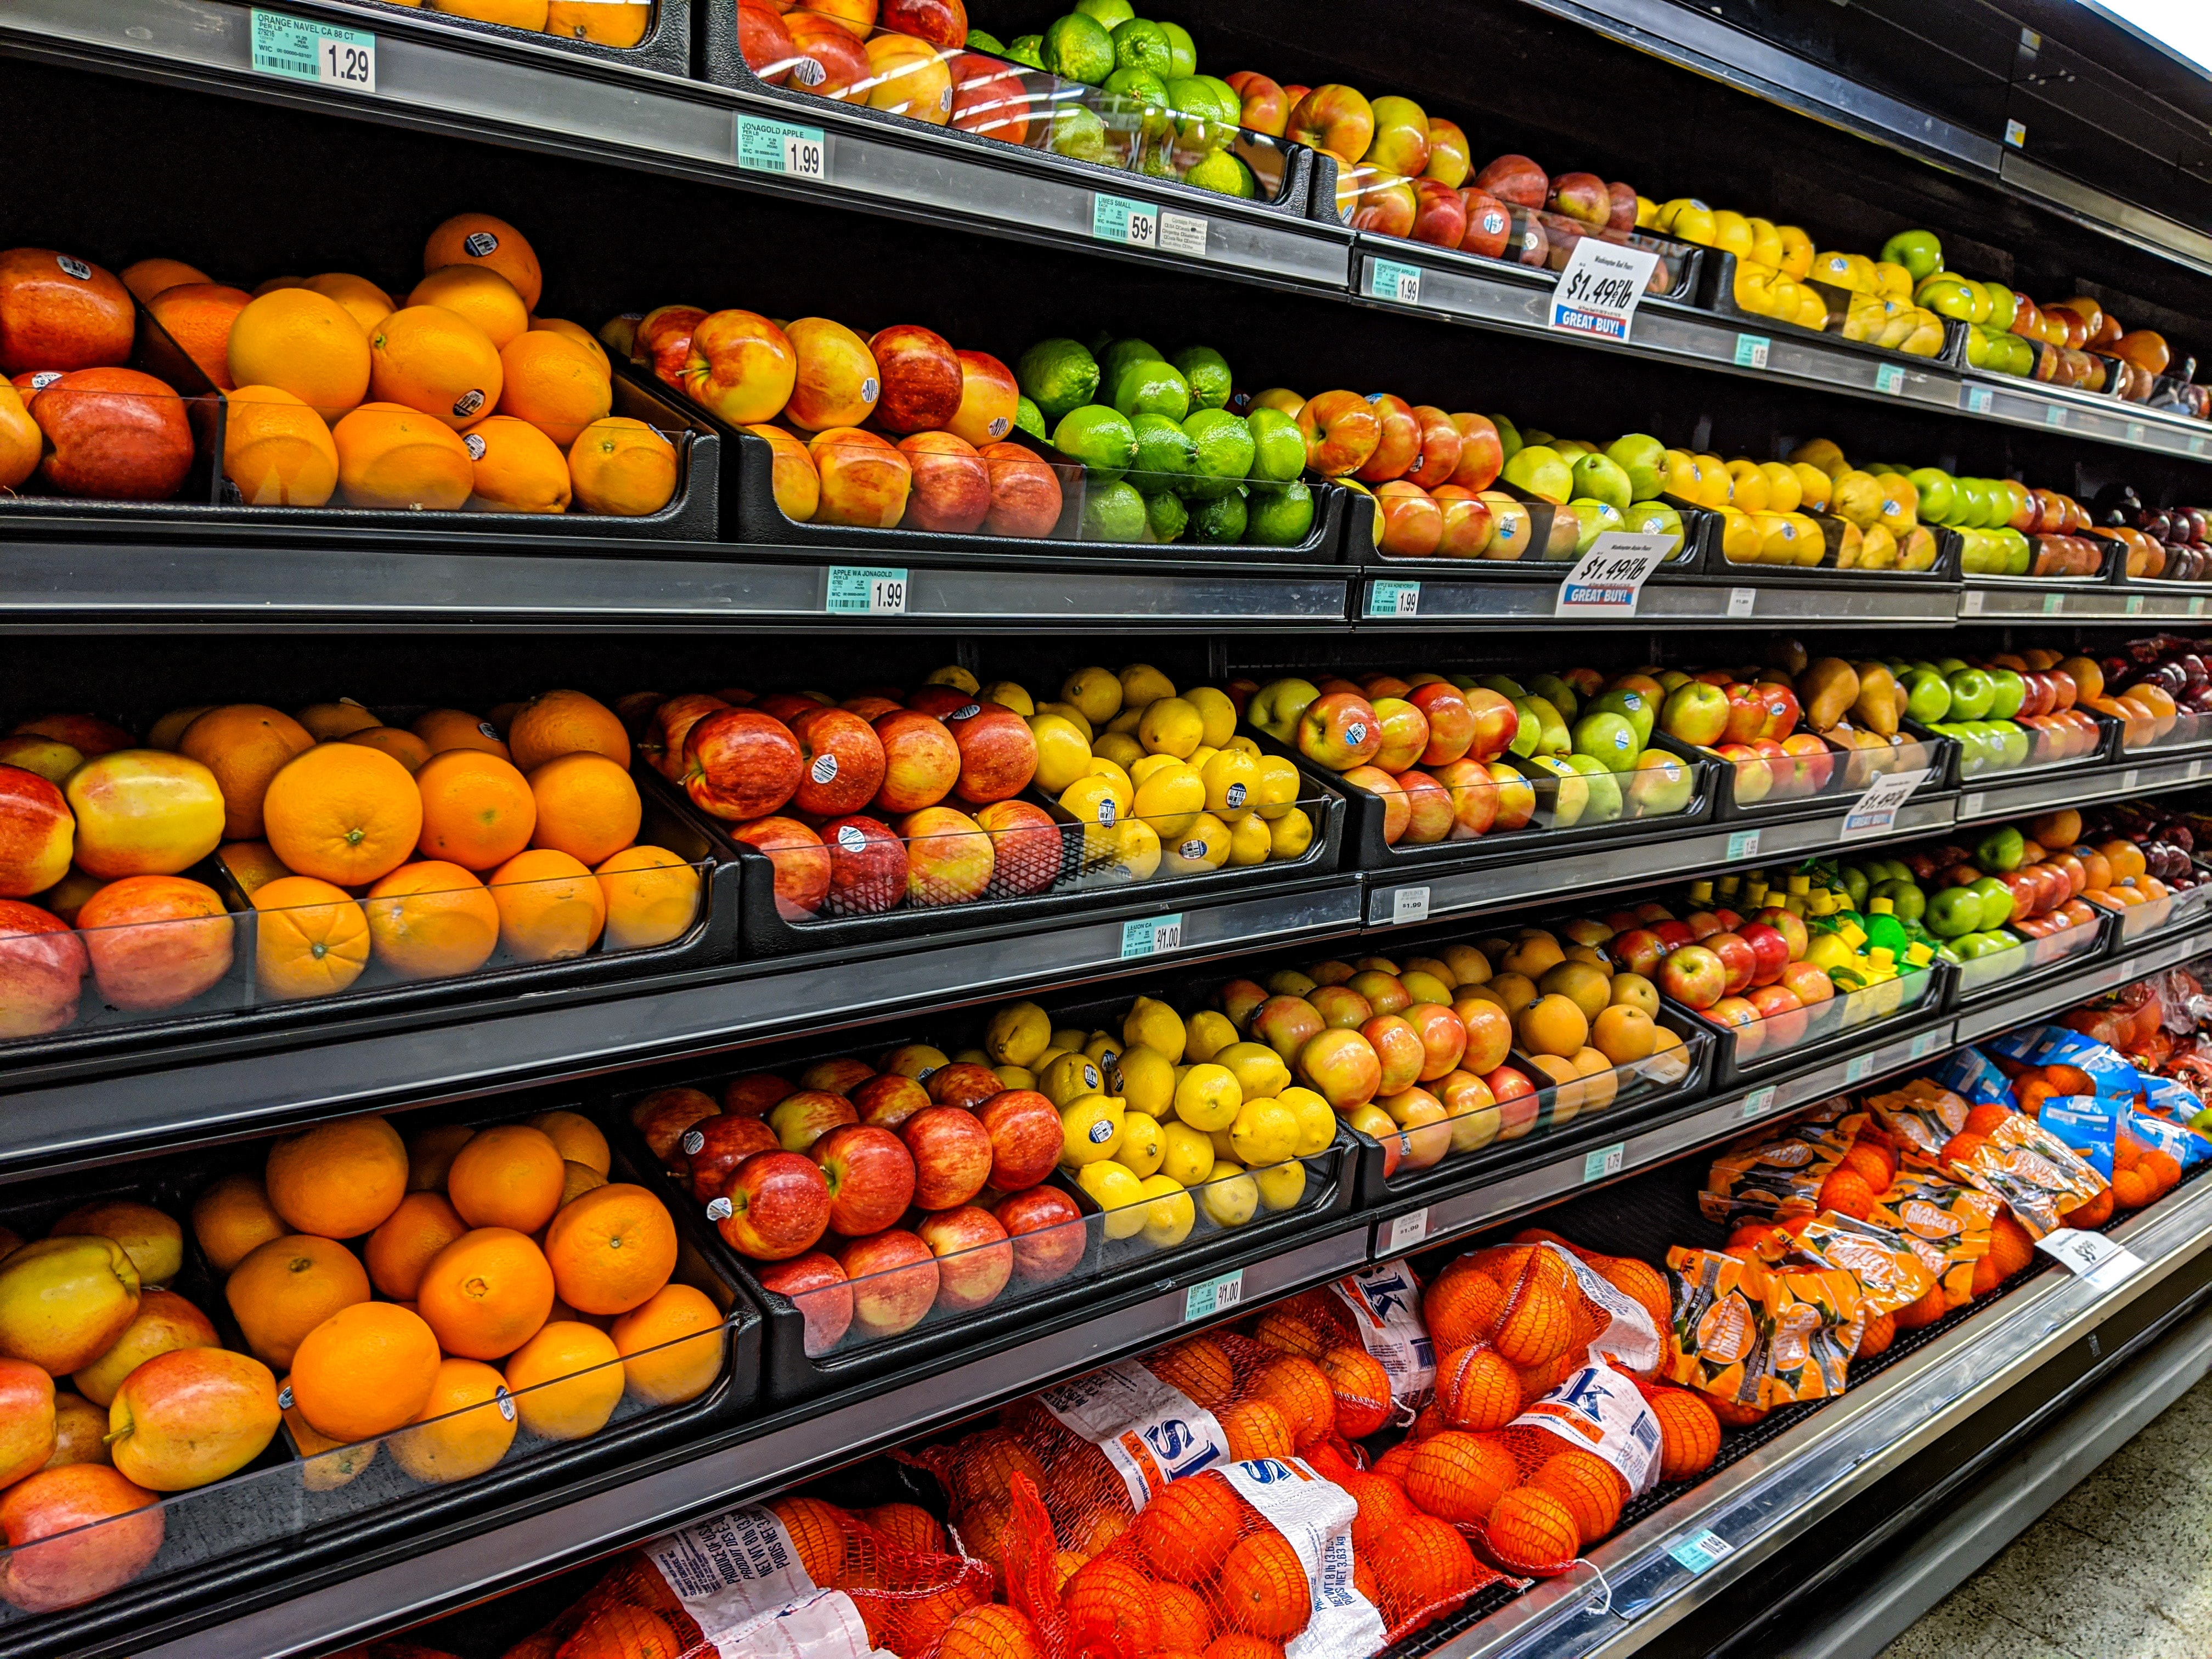 post pandemic grocery shopping habits sticking around